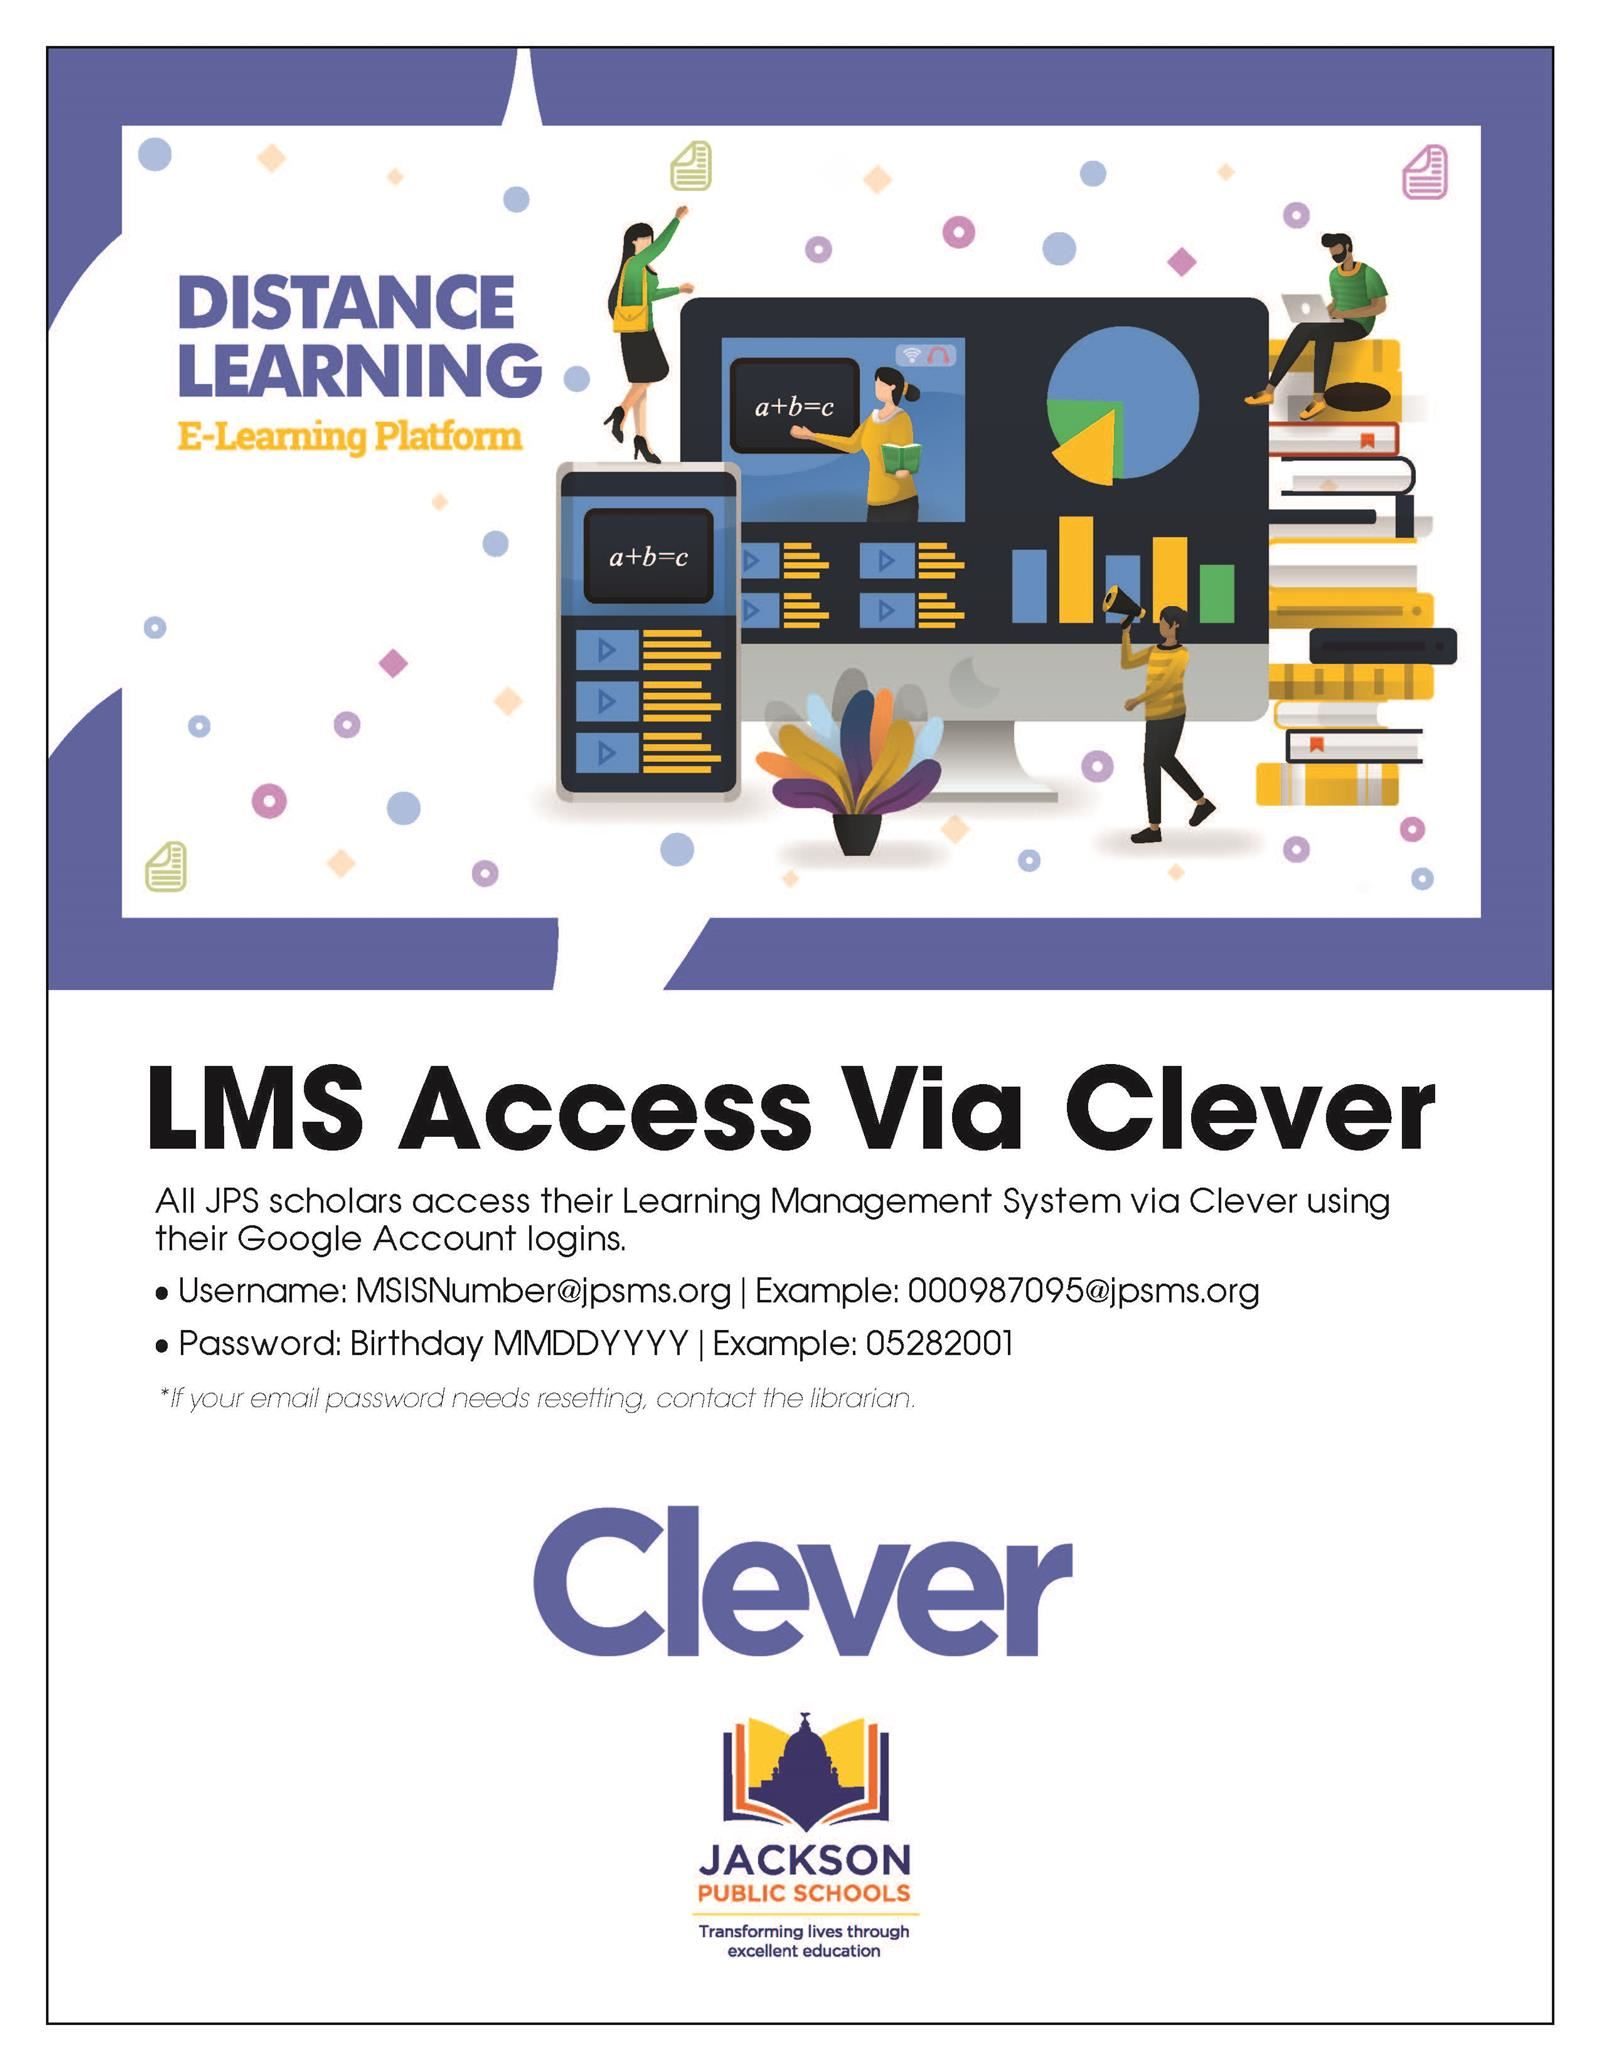 LMS Access Via Clever